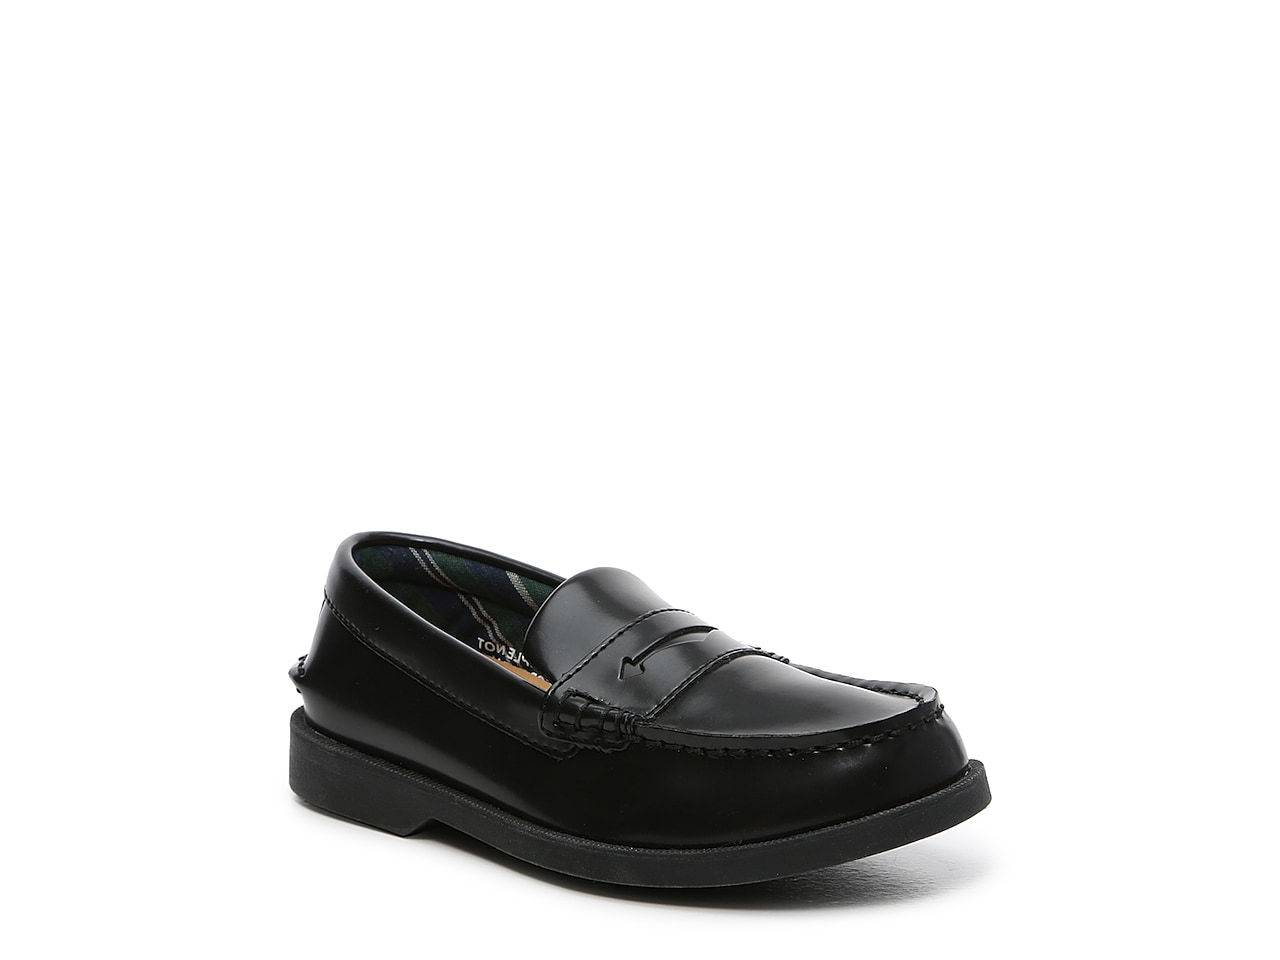 Sperry Colton Penny Loafer - Kids' Kids Shoes | DSW